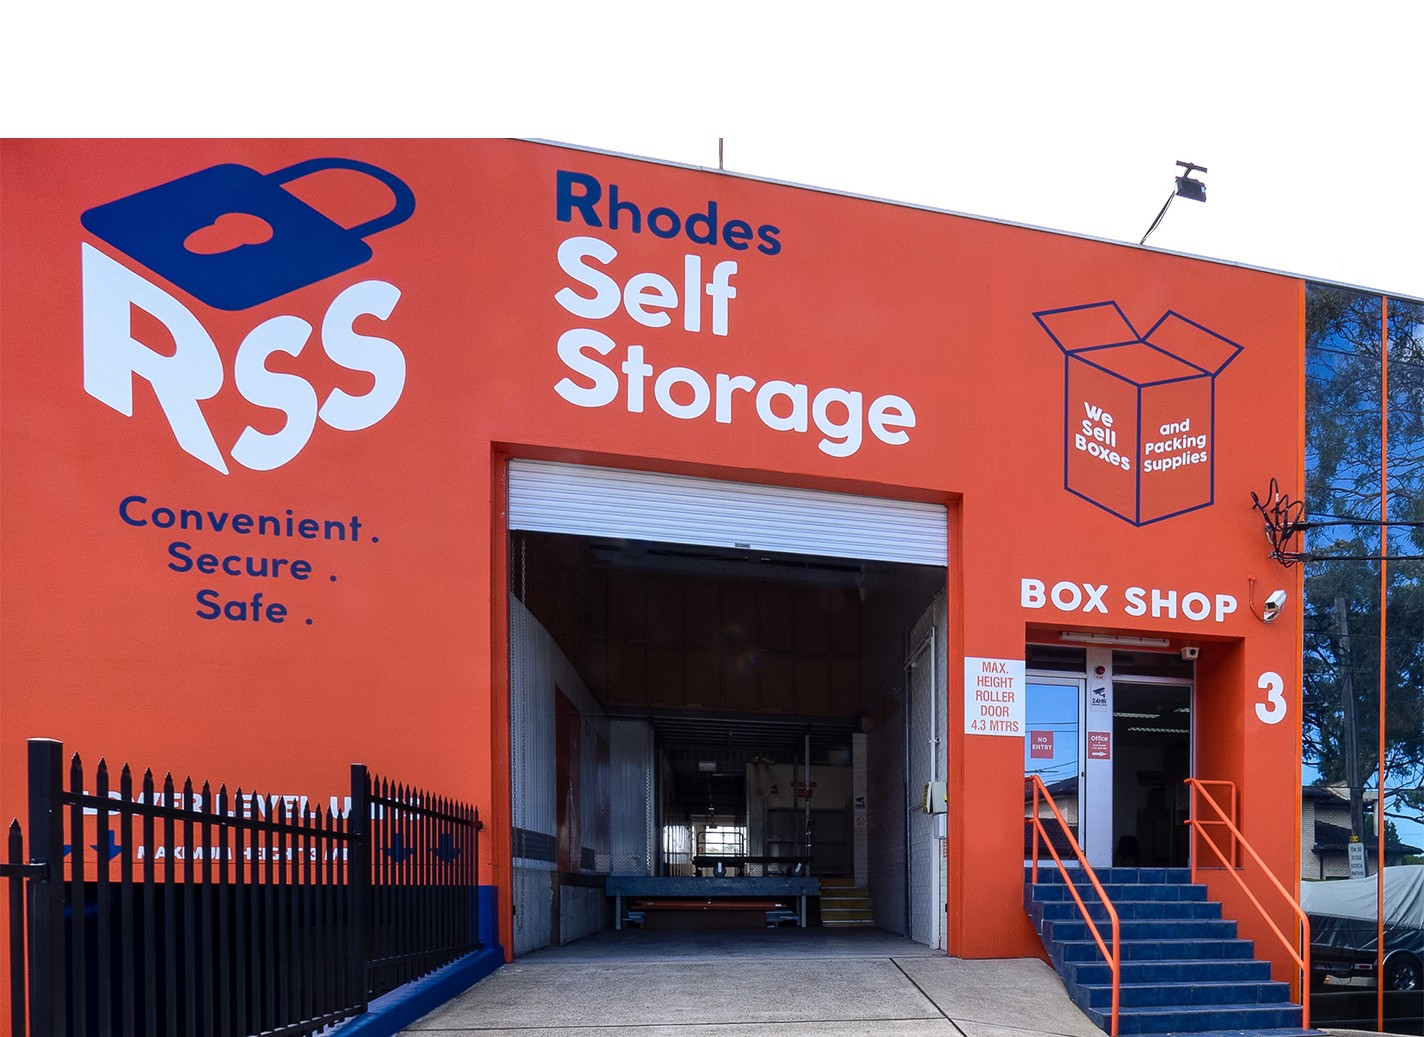 Rhodes Self Storage